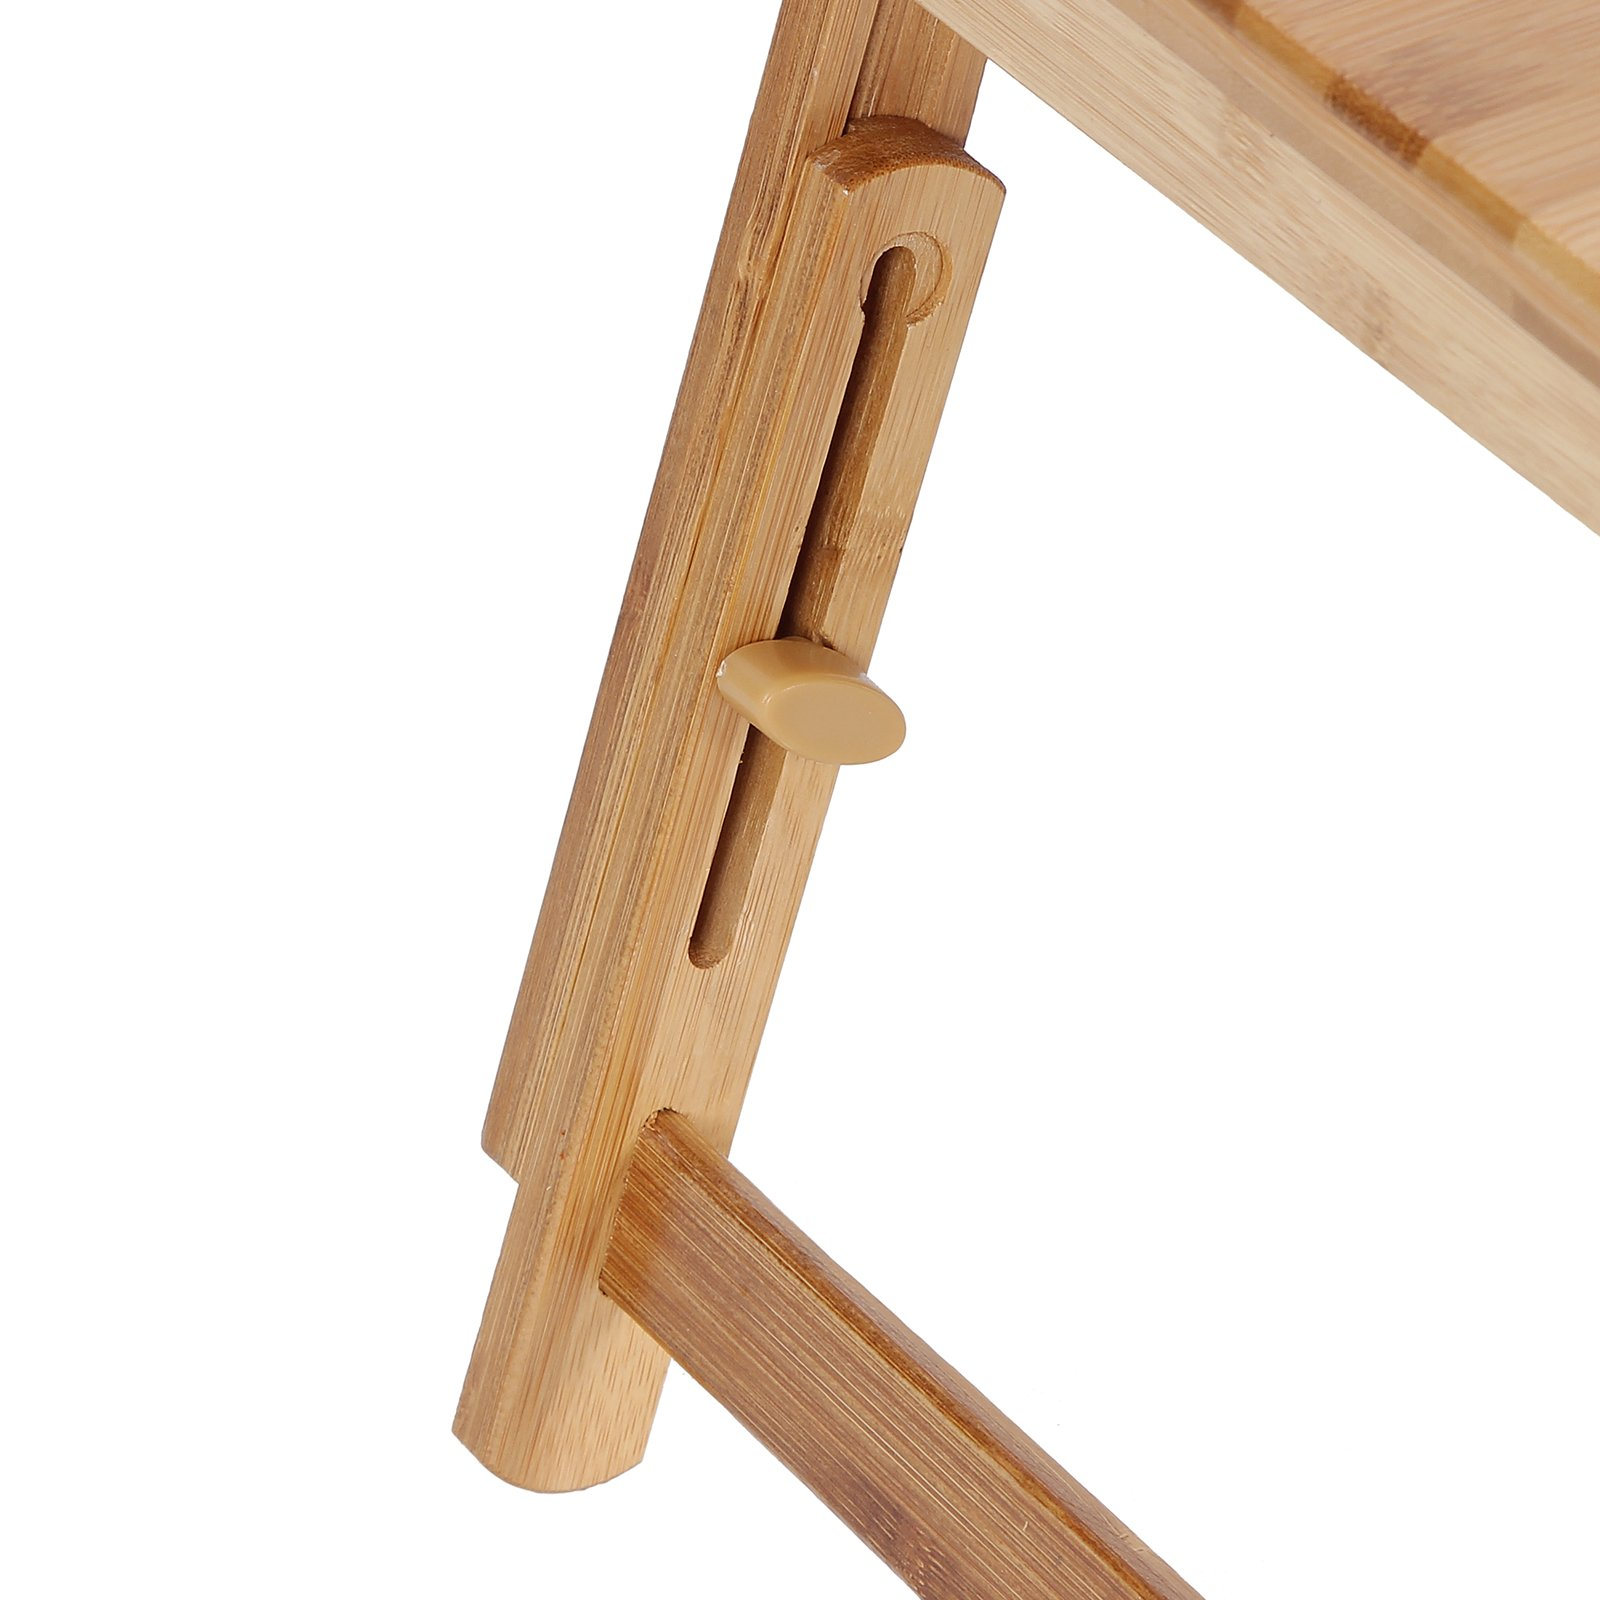 SONGMICS Bamboo Laptop Desk Serving Bed Tray Tilting Top ULLD001 by SONGMICS (Image #8)